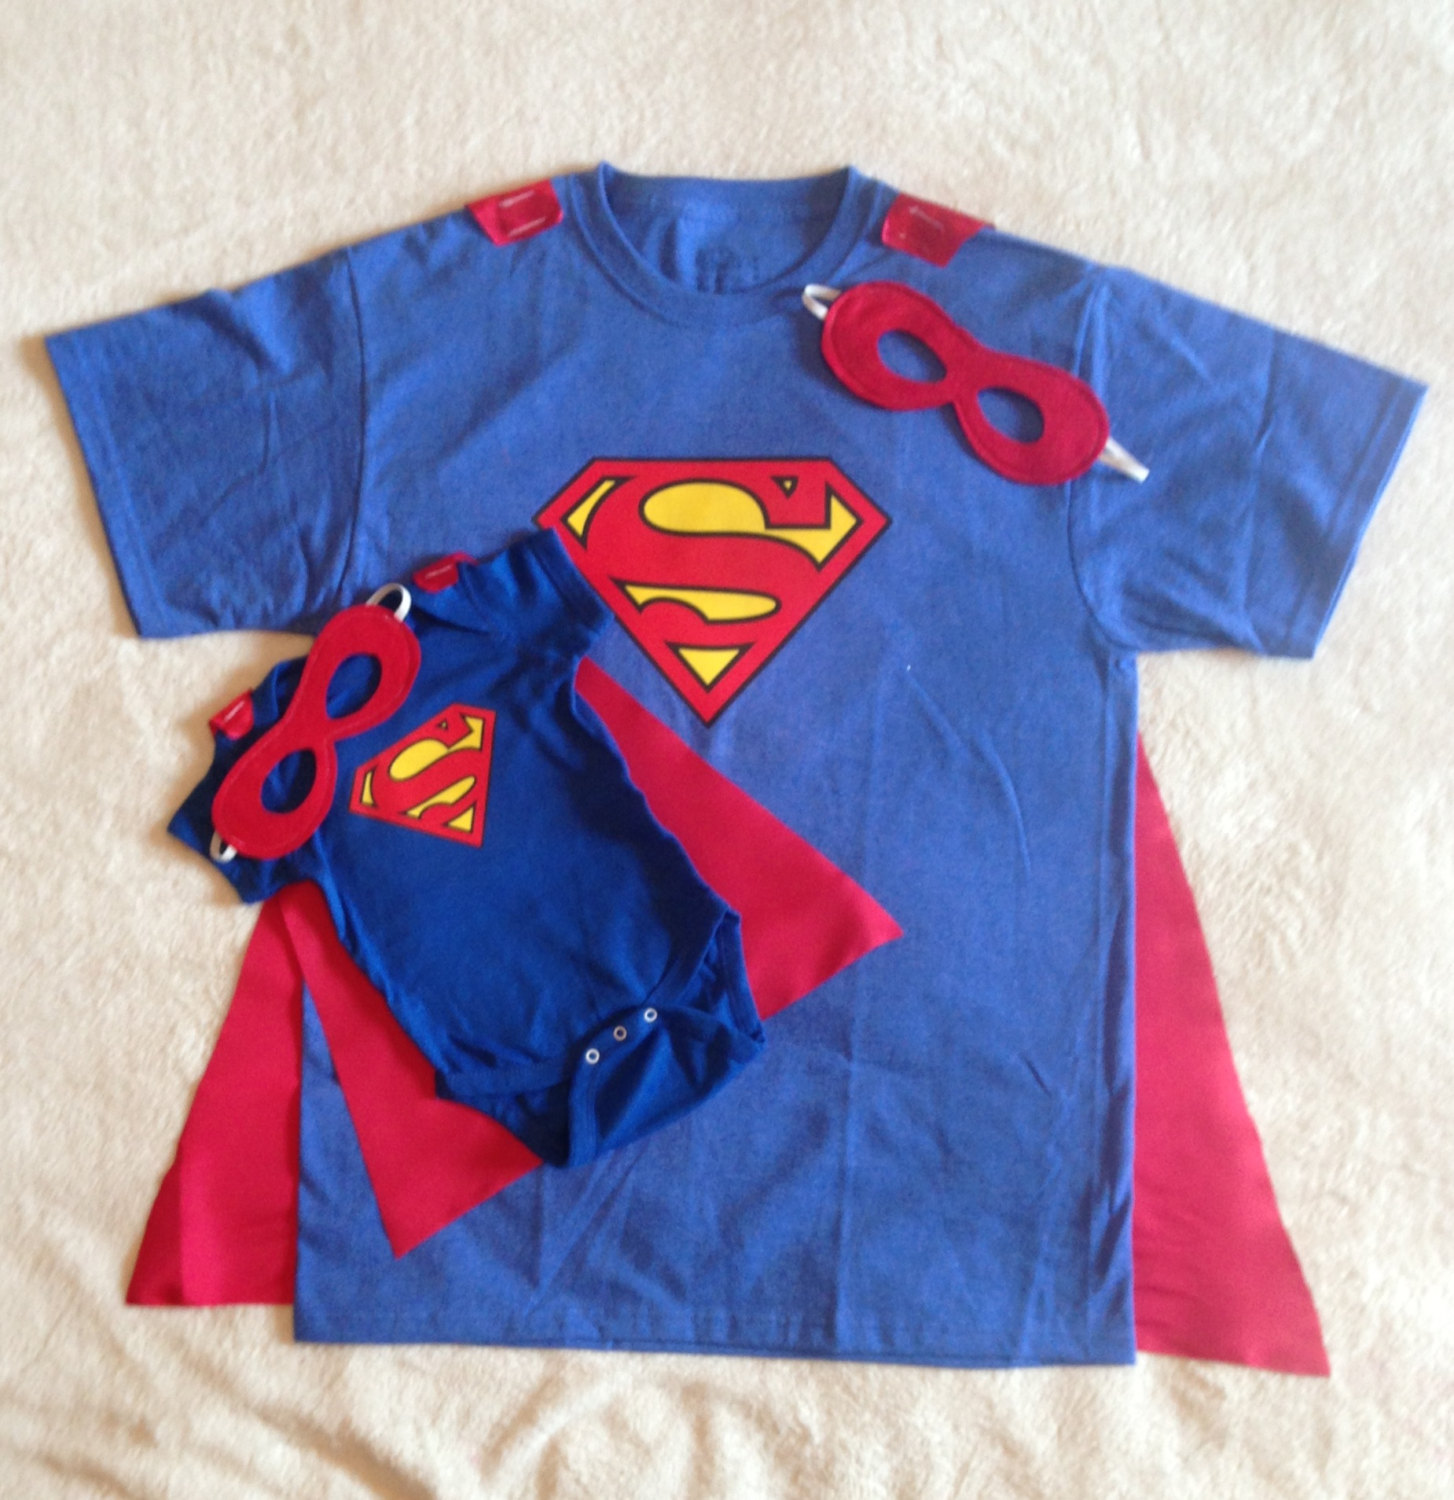 e56fd81e1 New Dad Gift Set or New Big Brother, Superman T-Shirt with Cape and ...